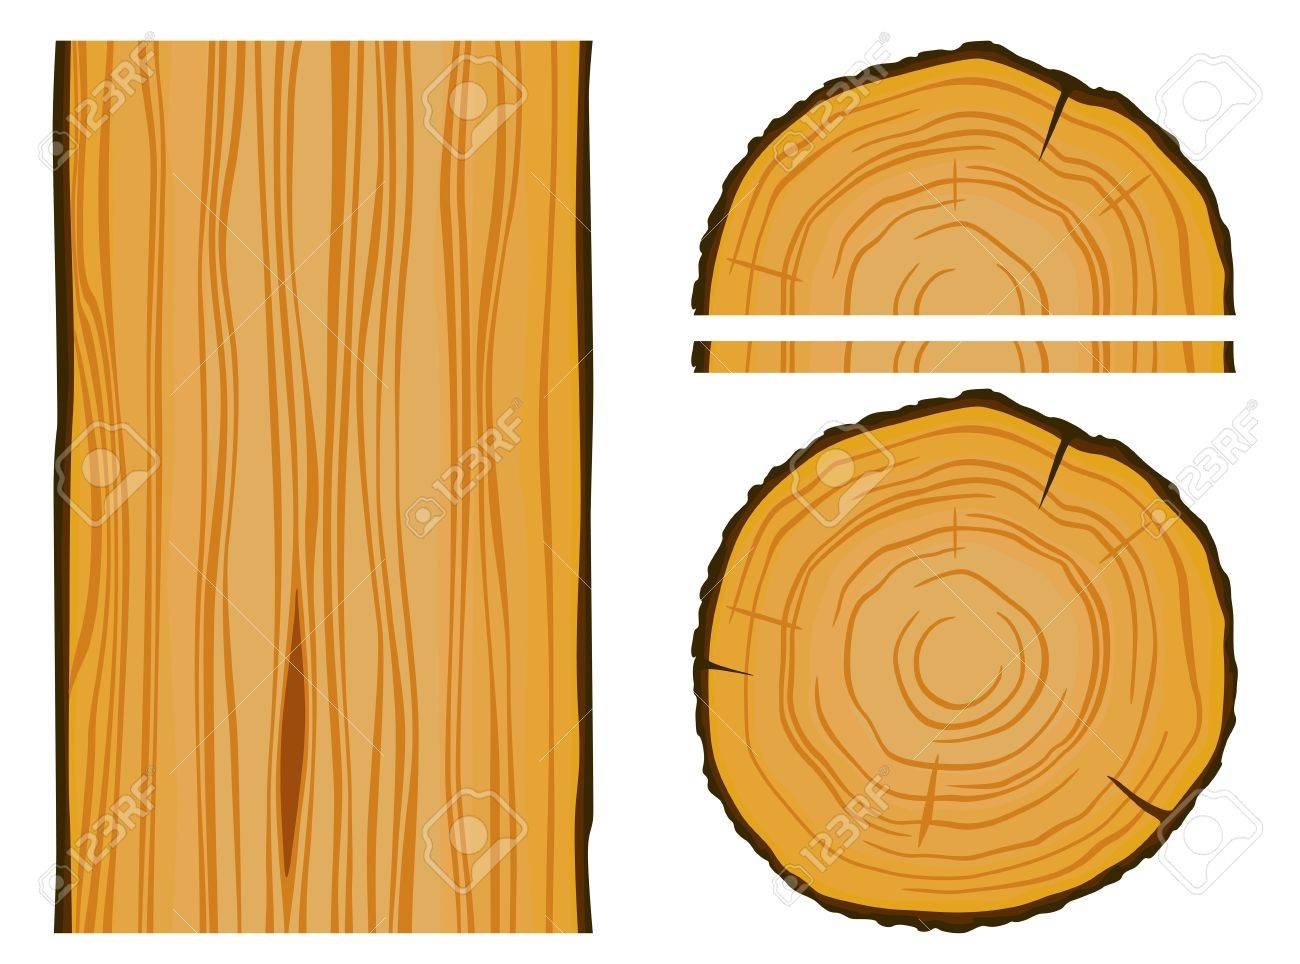 timber and wood texture with elements editable illustration royalty rh 123rf com wood texture vectors free wood texture vector illustrator